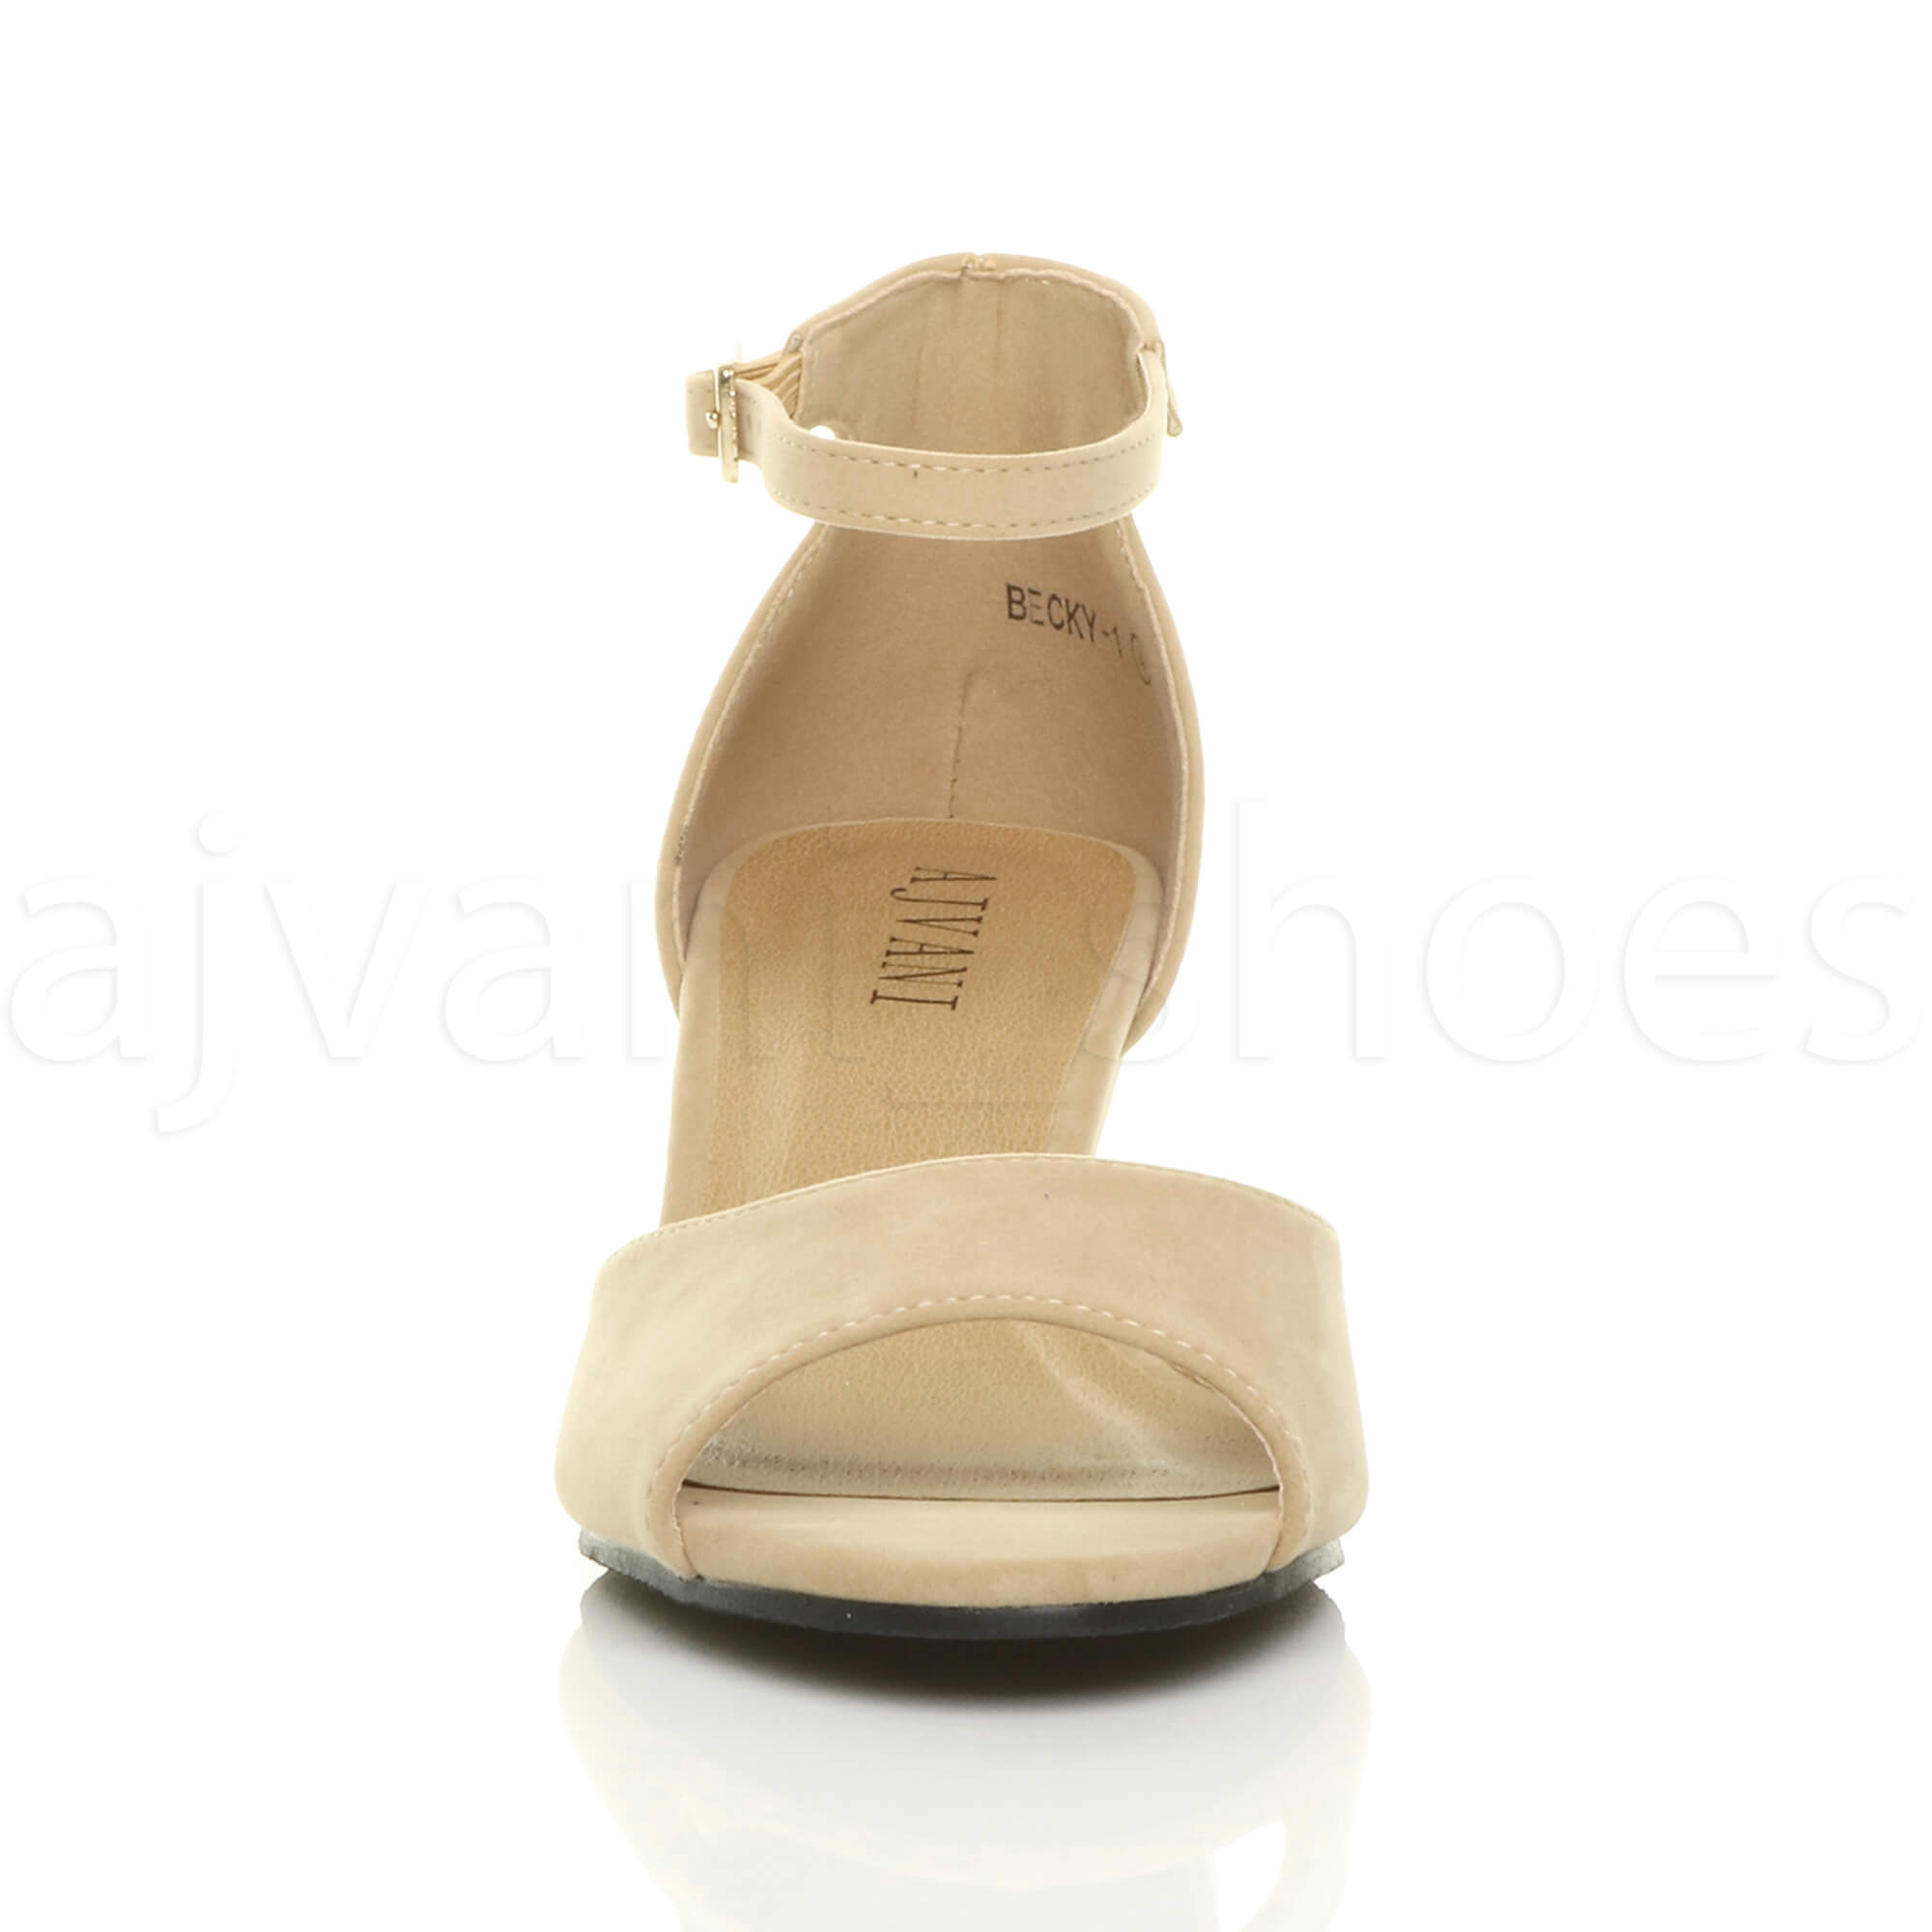 WOMENS-LADIES-LOW-MID-WEDGE-HEEL-ANKLE-STRAP-SMART-CASUAL-EVENING-SANDALS-SIZE thumbnail 111